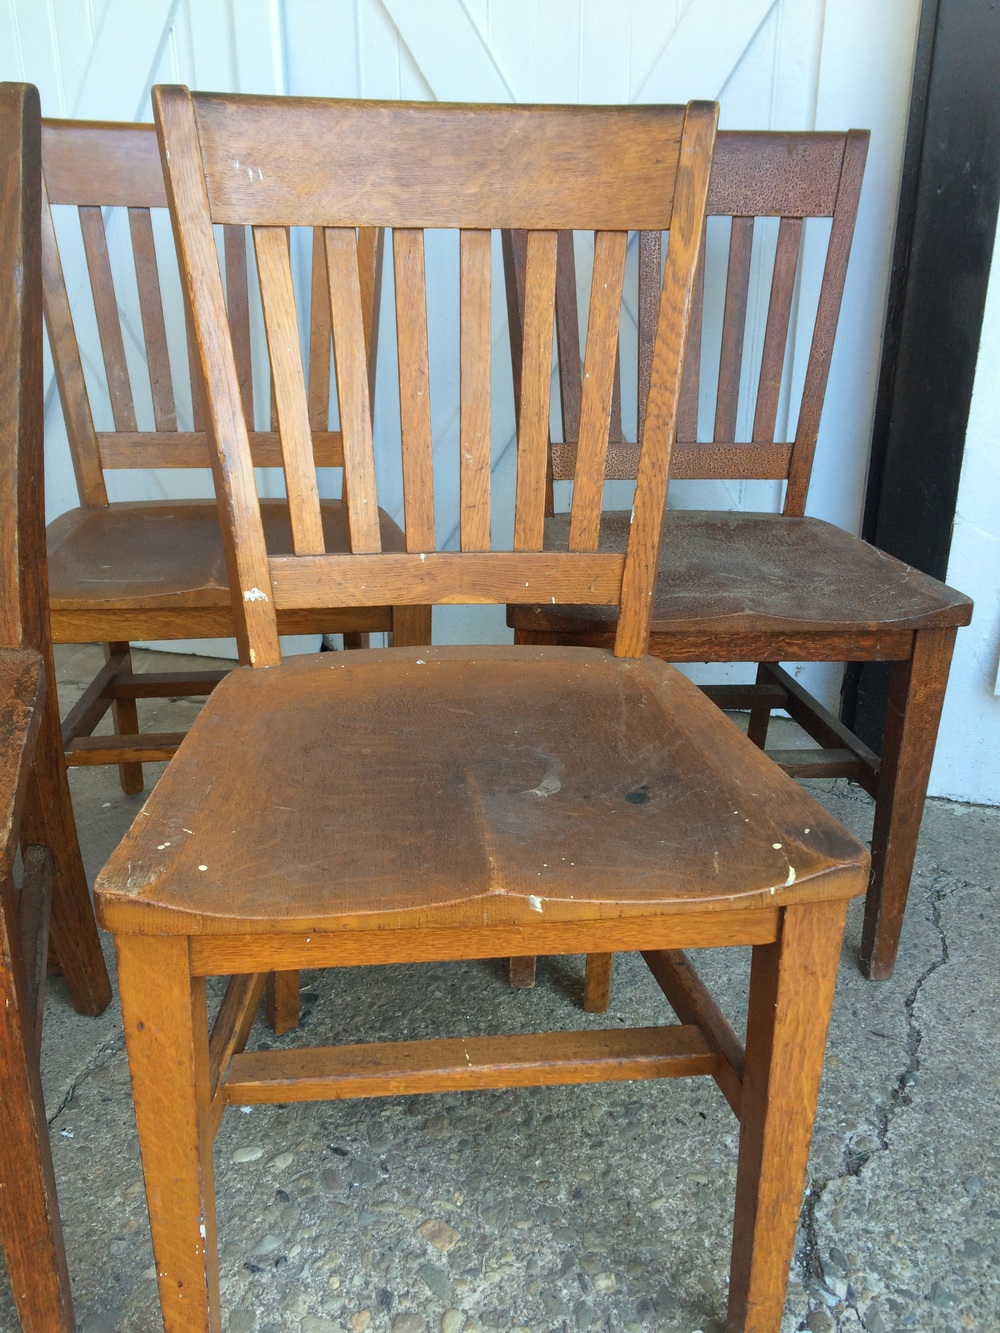 These sturdy oak chairs were reclaimed from an old library.